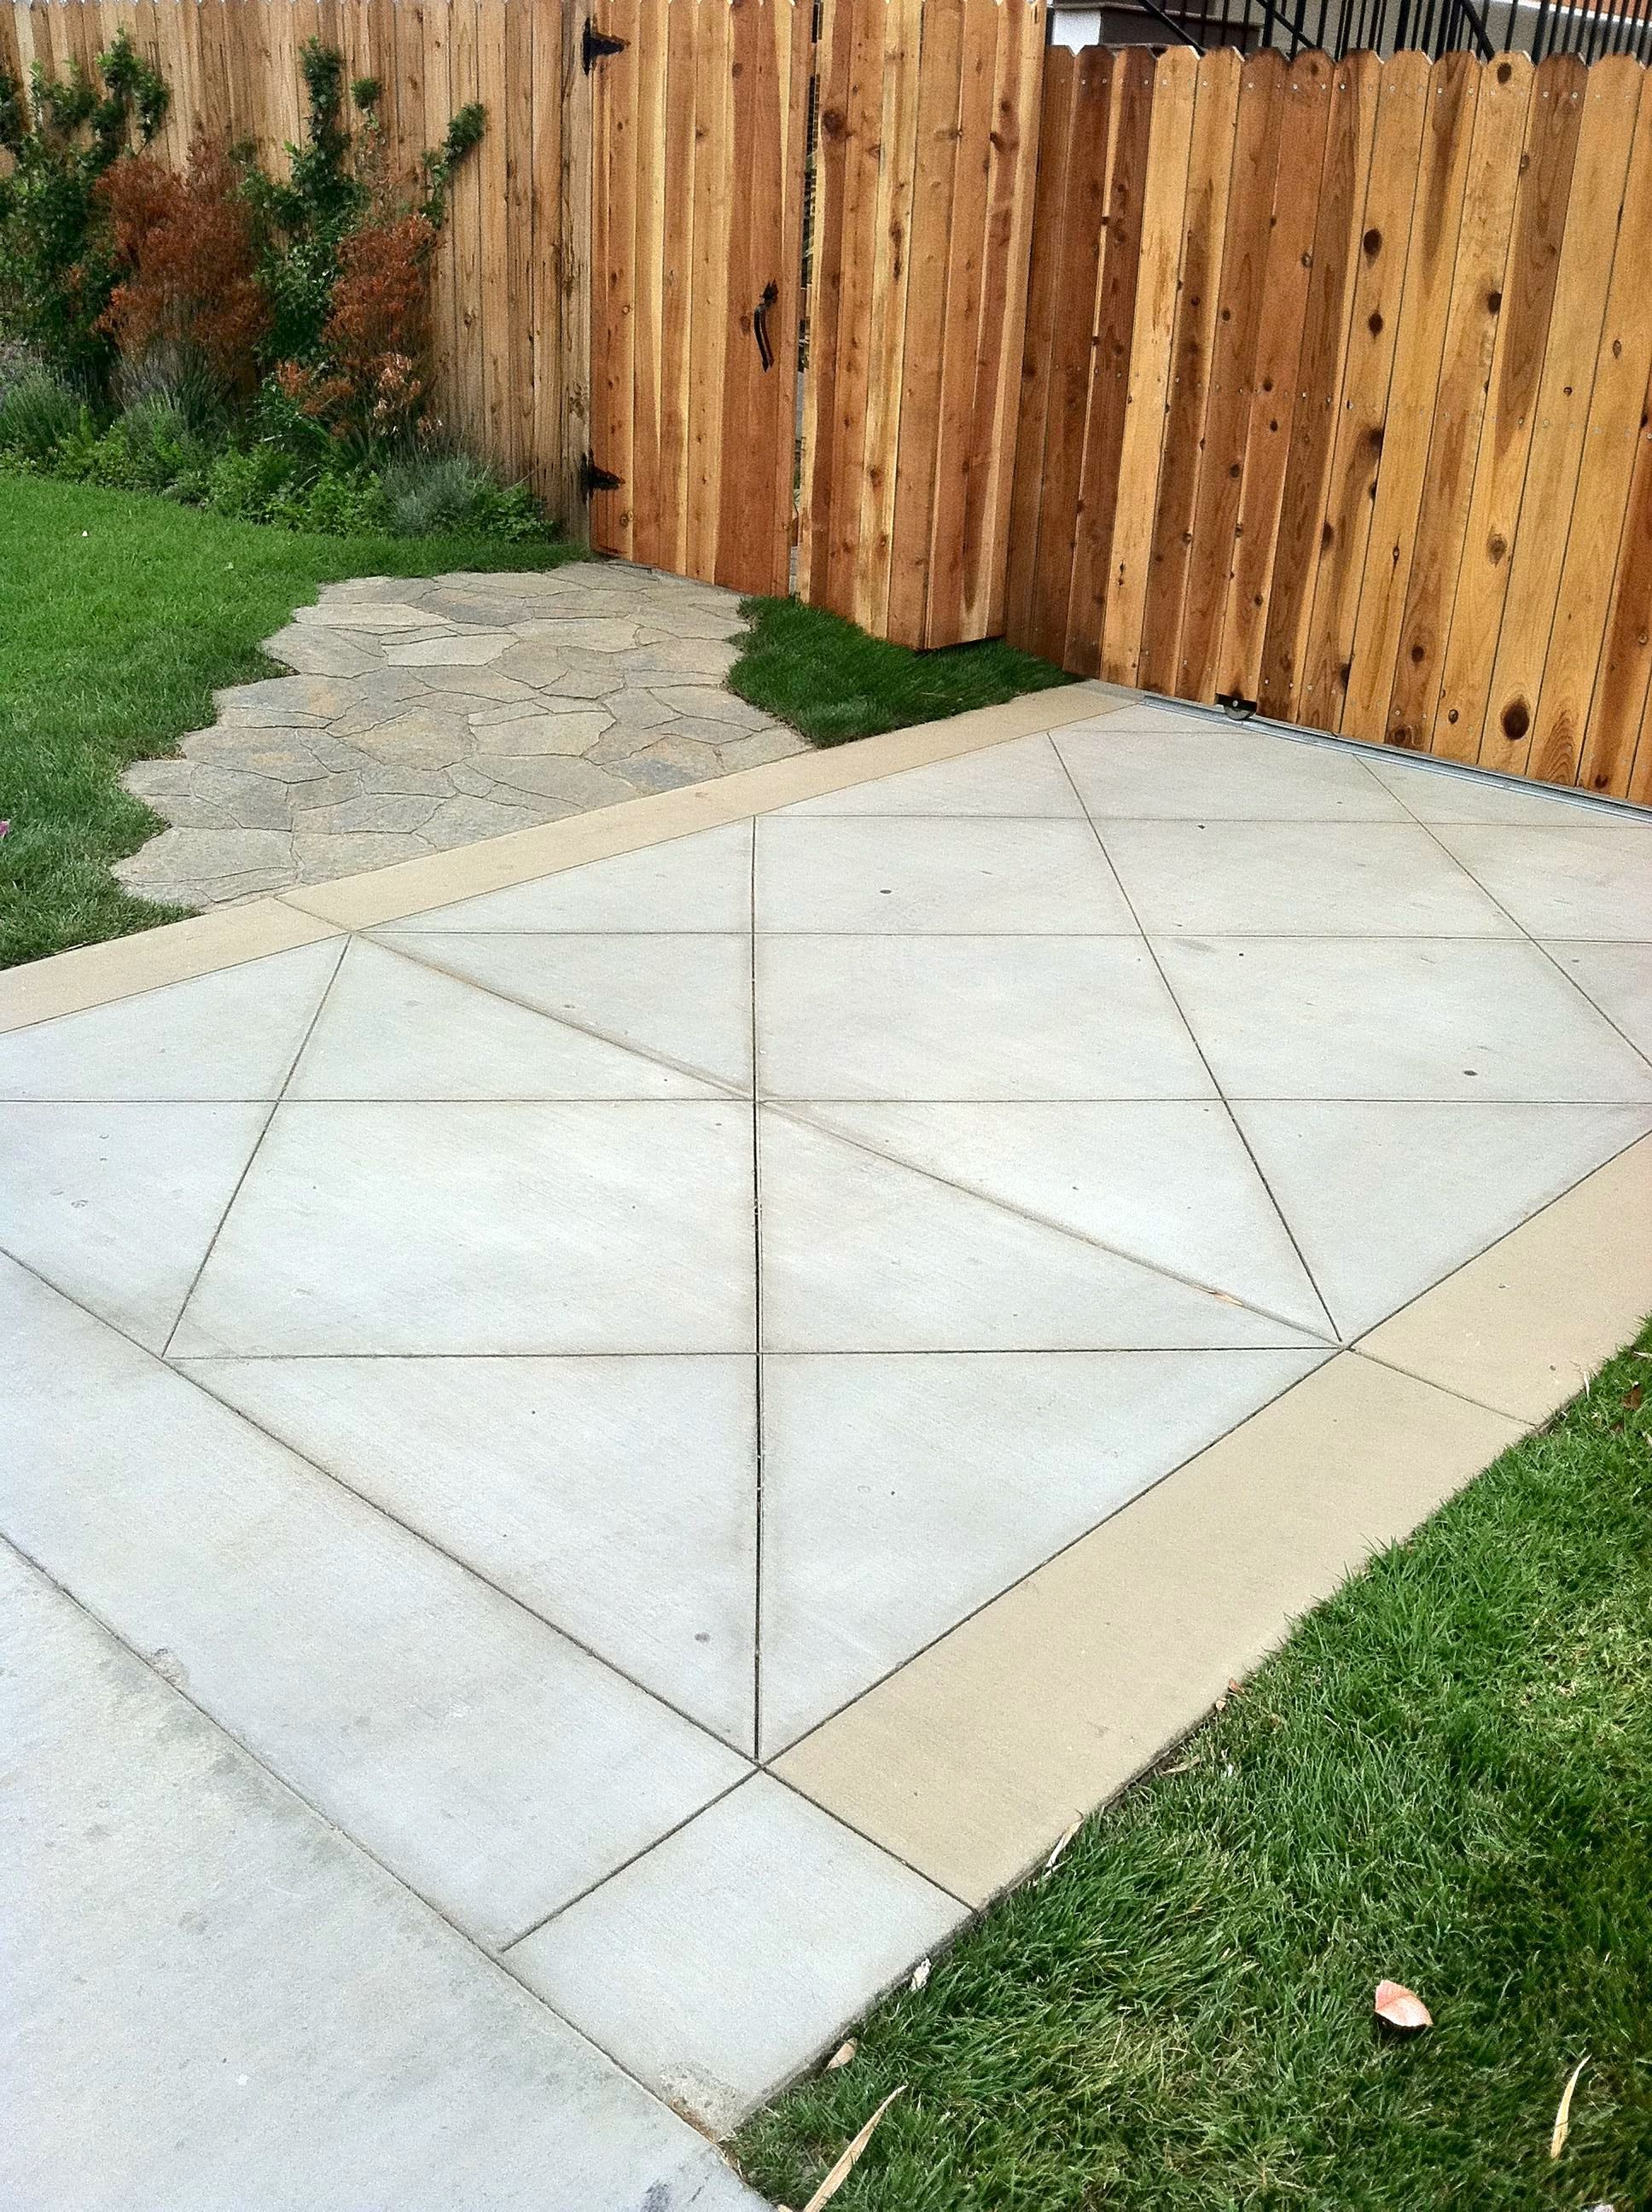 Bon Diamond Cut Concrete Driveway With Color Band And Mega Arbel Paver Walkway.  Stained Concrete Driveway